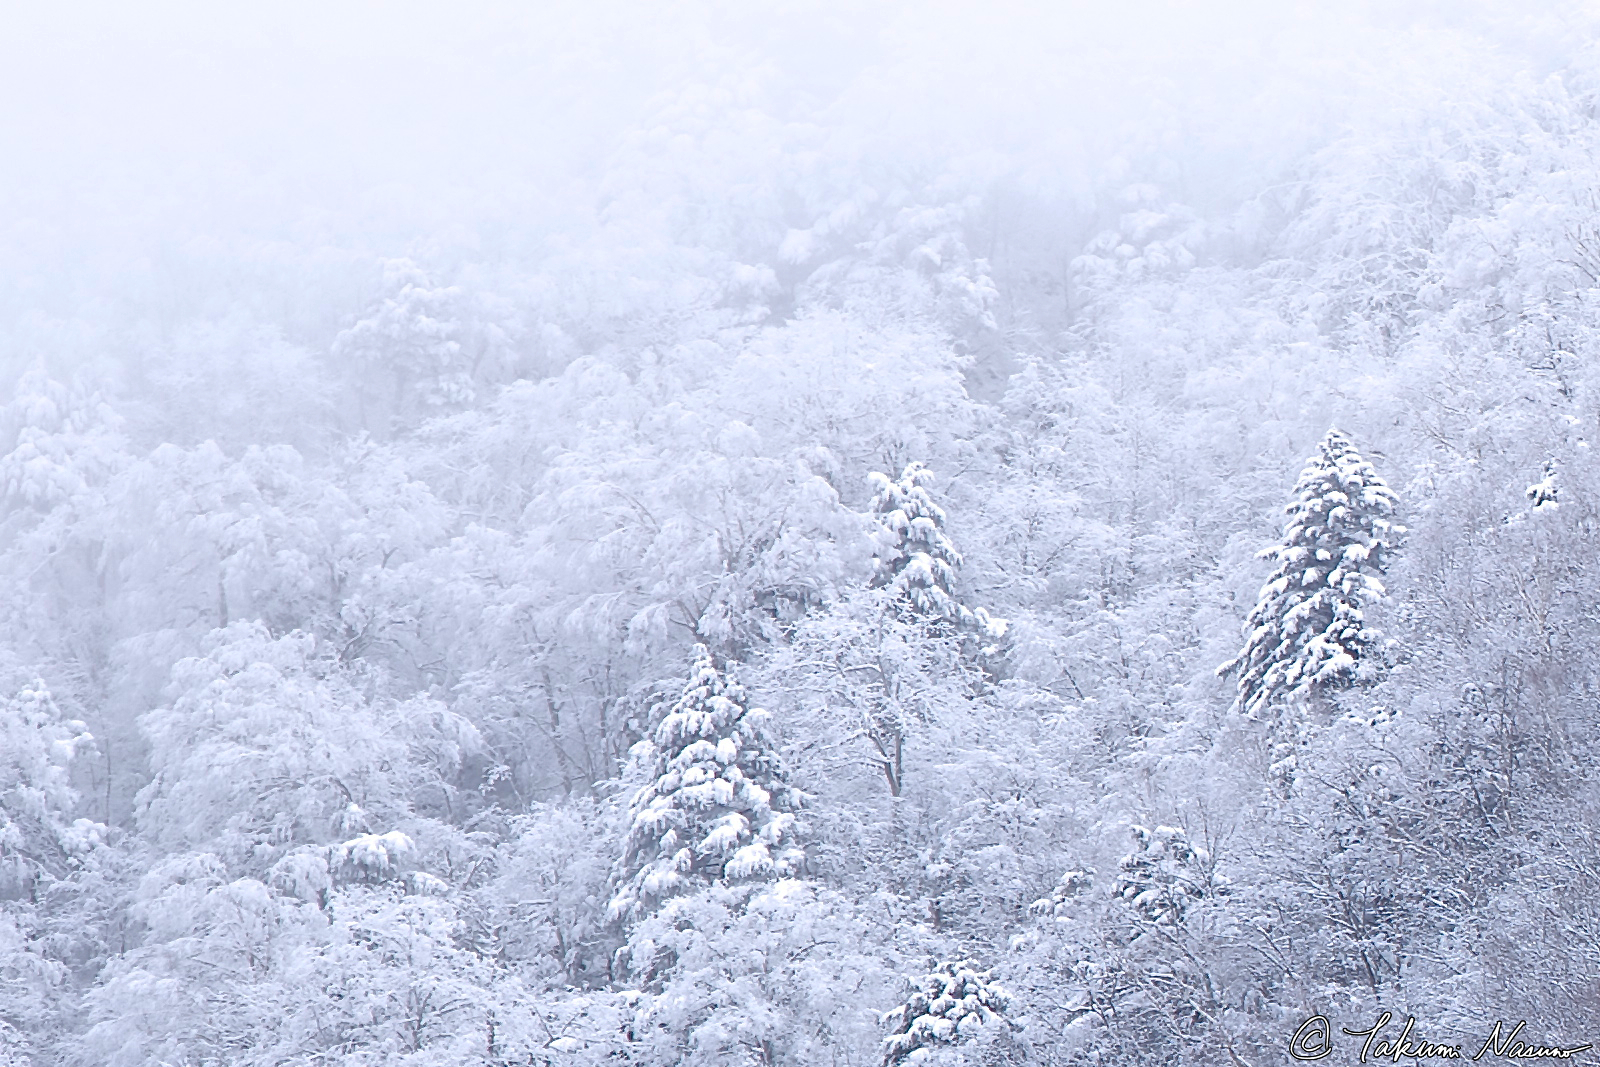 snowy-mountains-of-takayama-village_cropped-again